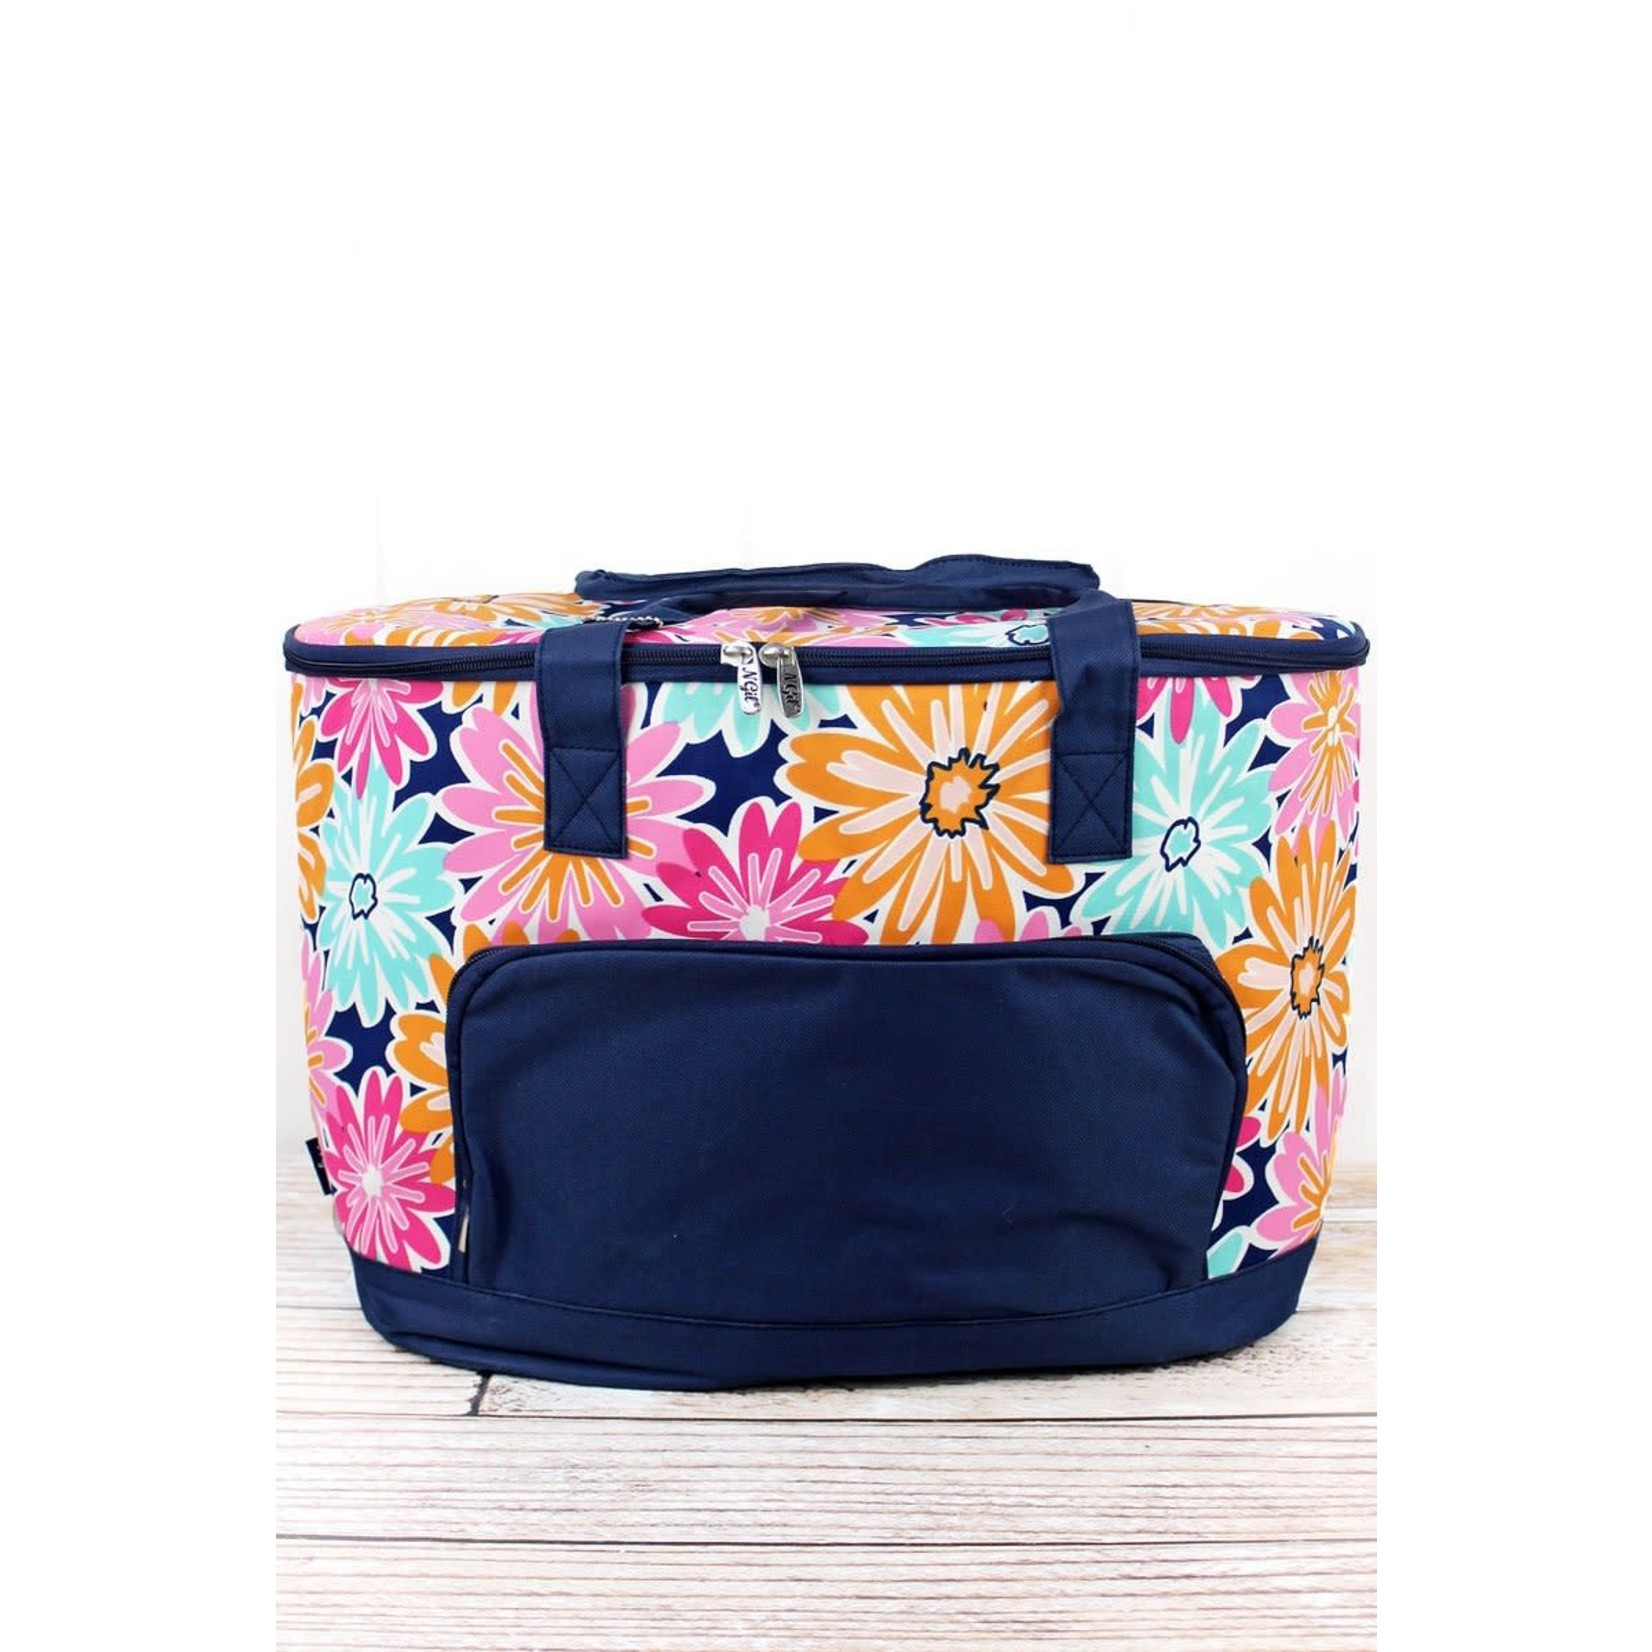 Flower Power Cooler with Navy